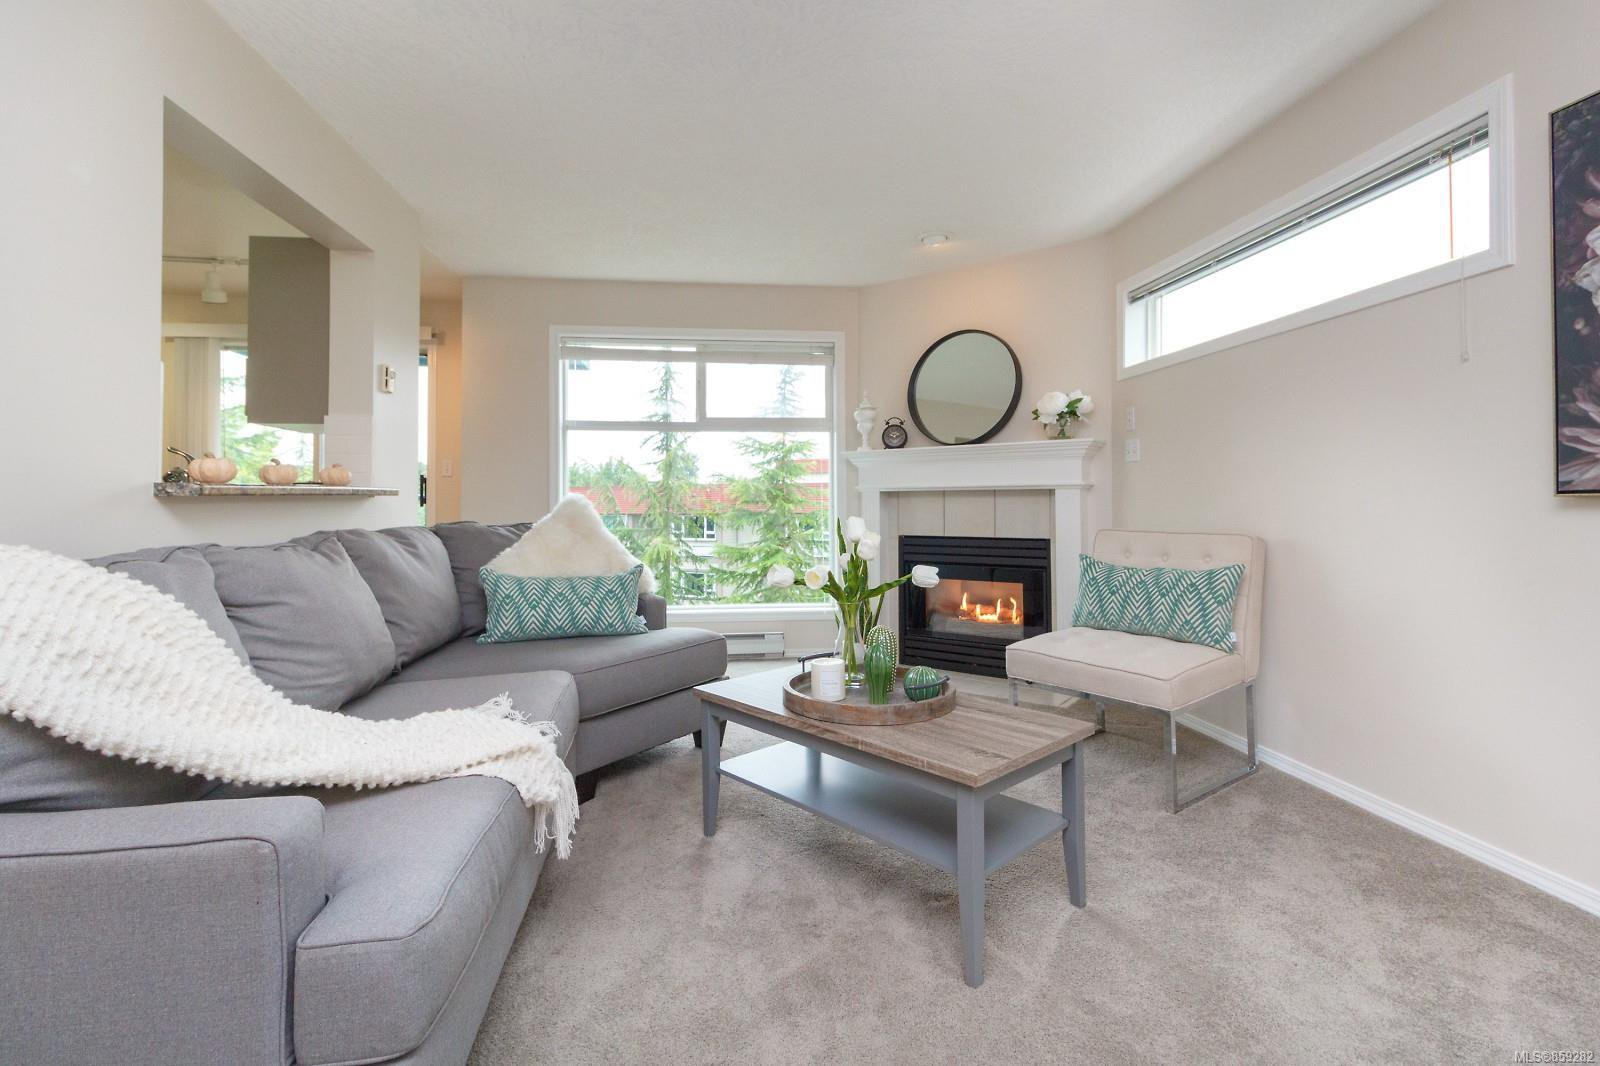 Main Photo: 301 894 Vernon Ave in : SE Swan Lake Condo for sale (Saanich East)  : MLS®# 859282